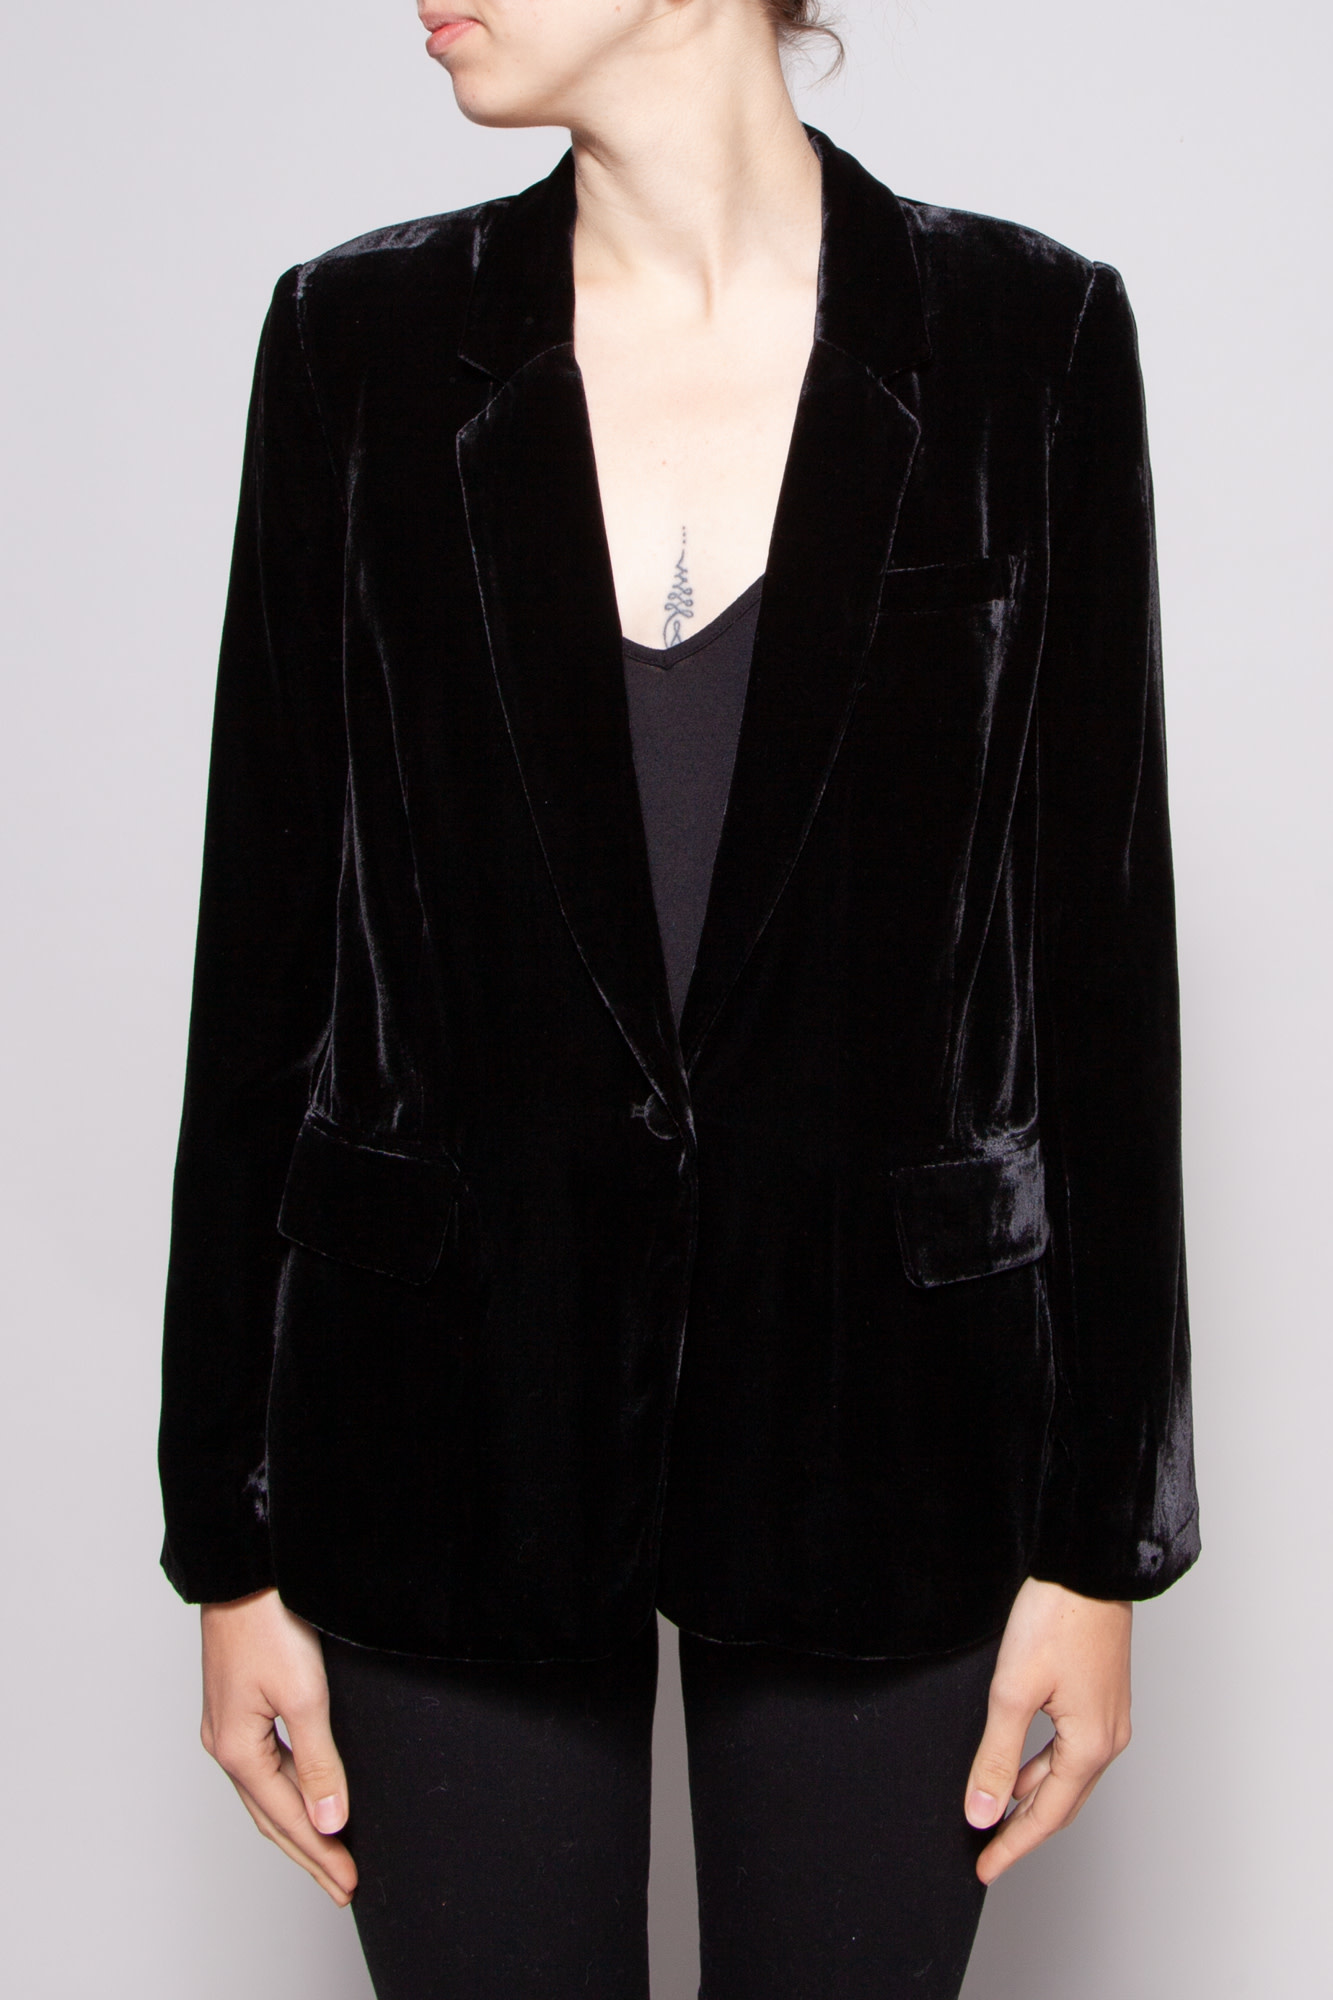 Joie BLACK VELVET BLAZER - NEW WITH TAGS